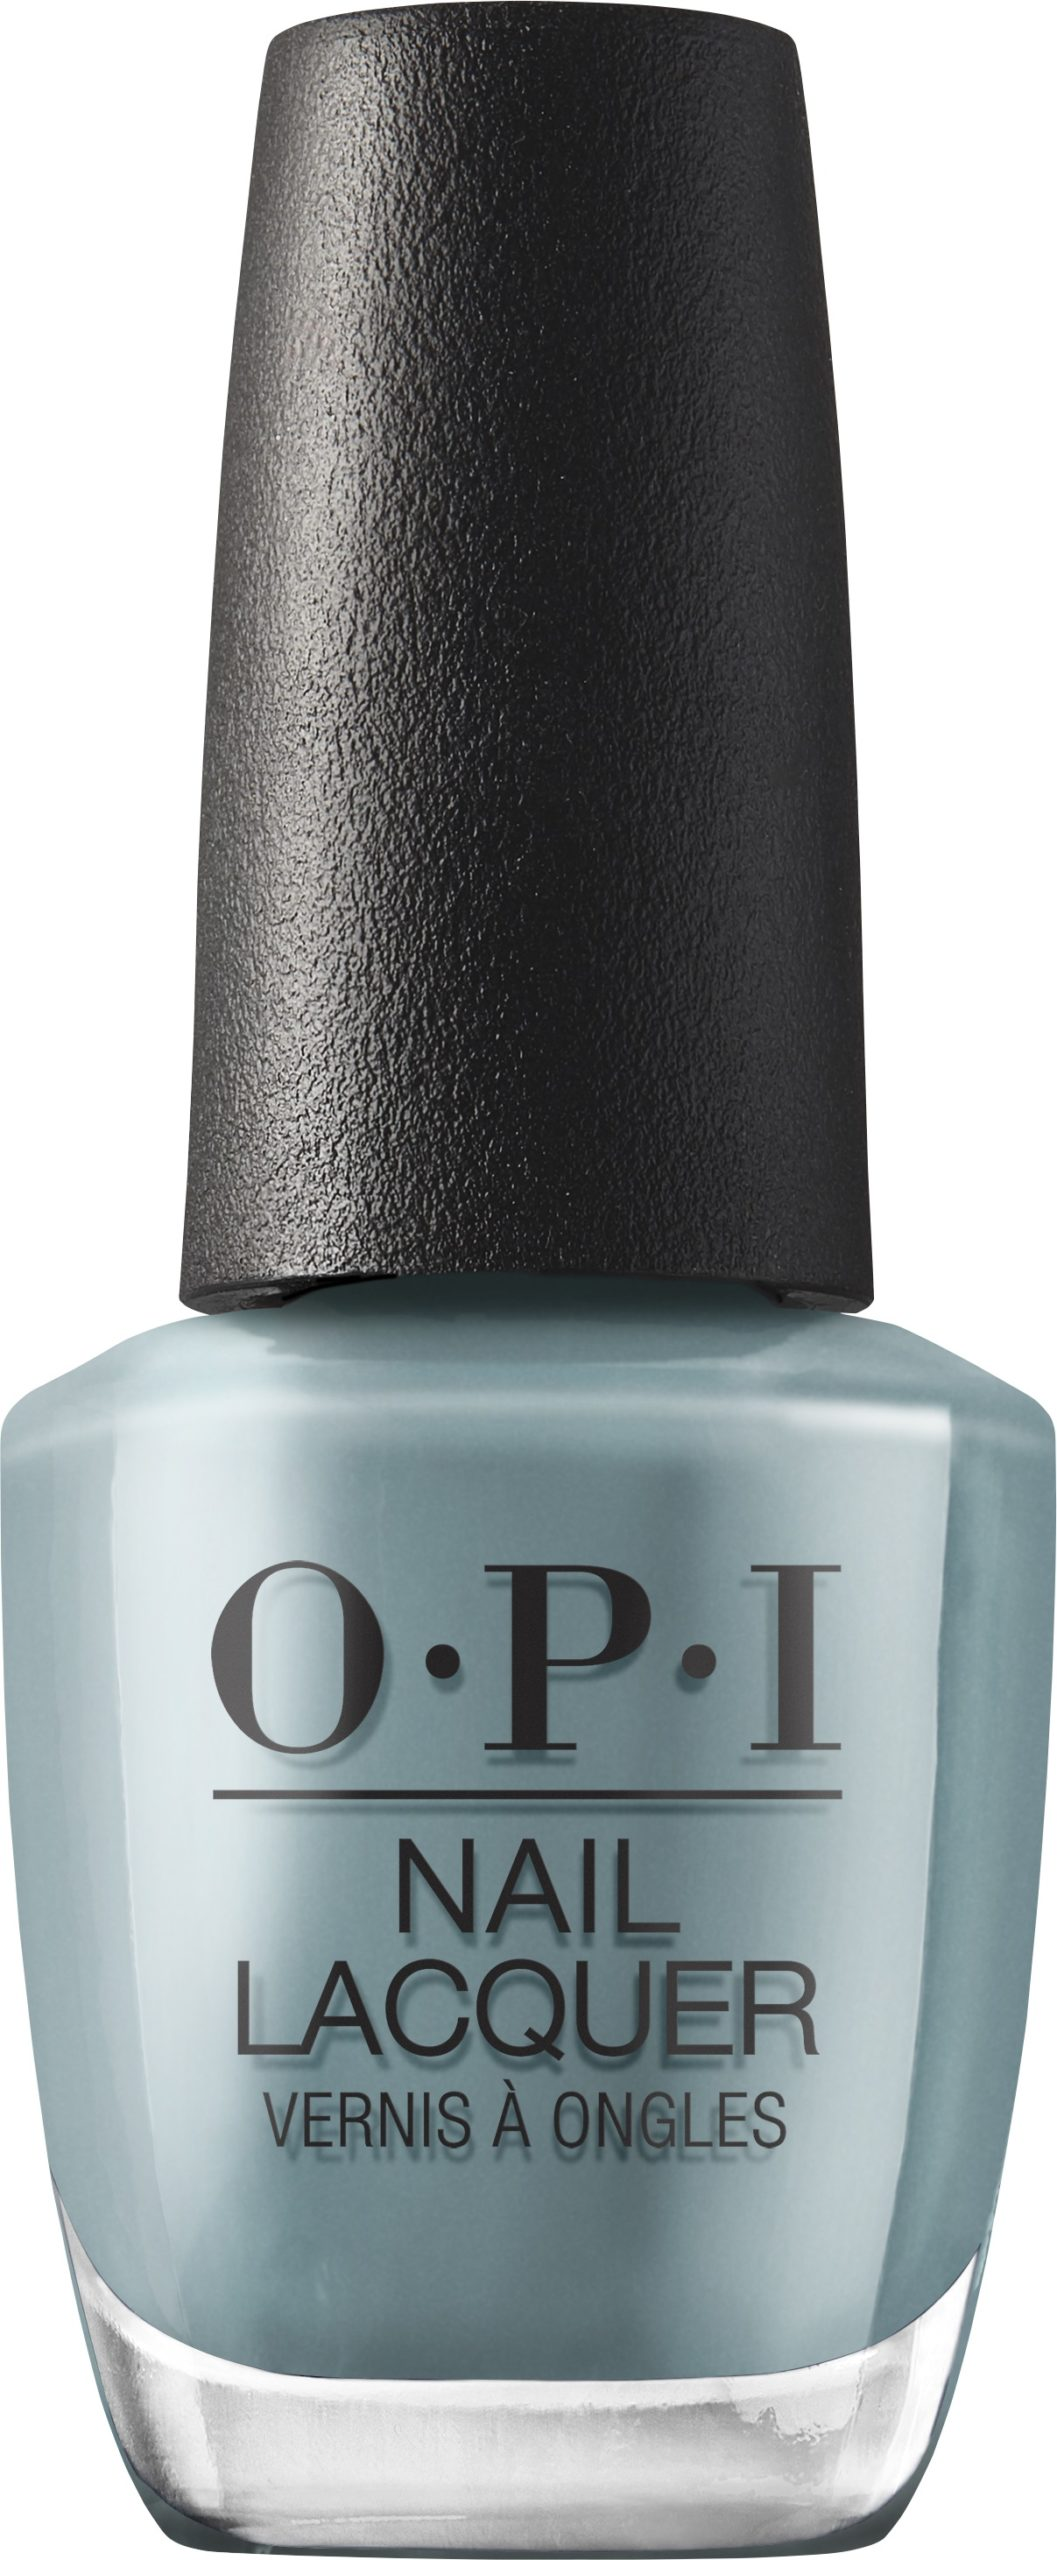 My Celebrity Life – OPI Destined to be a Legend Nail Lacquer